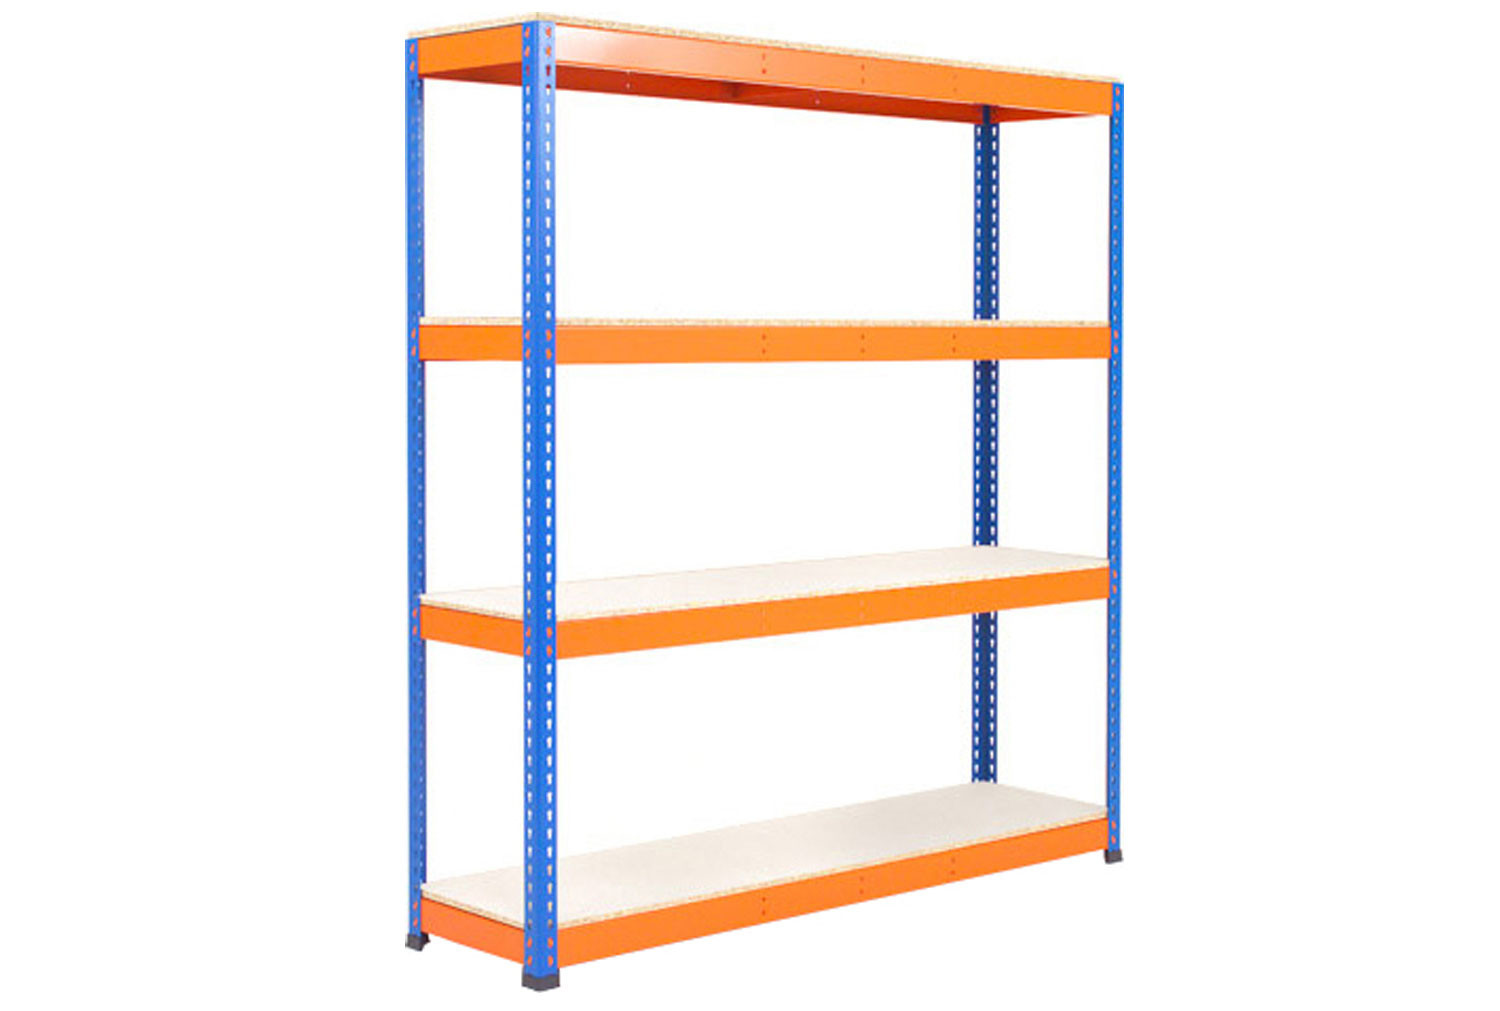 Rapid 1 Heavy Duty Shelving With 4 Melamine Shelves 1830wx1980h (Blue/Orange)